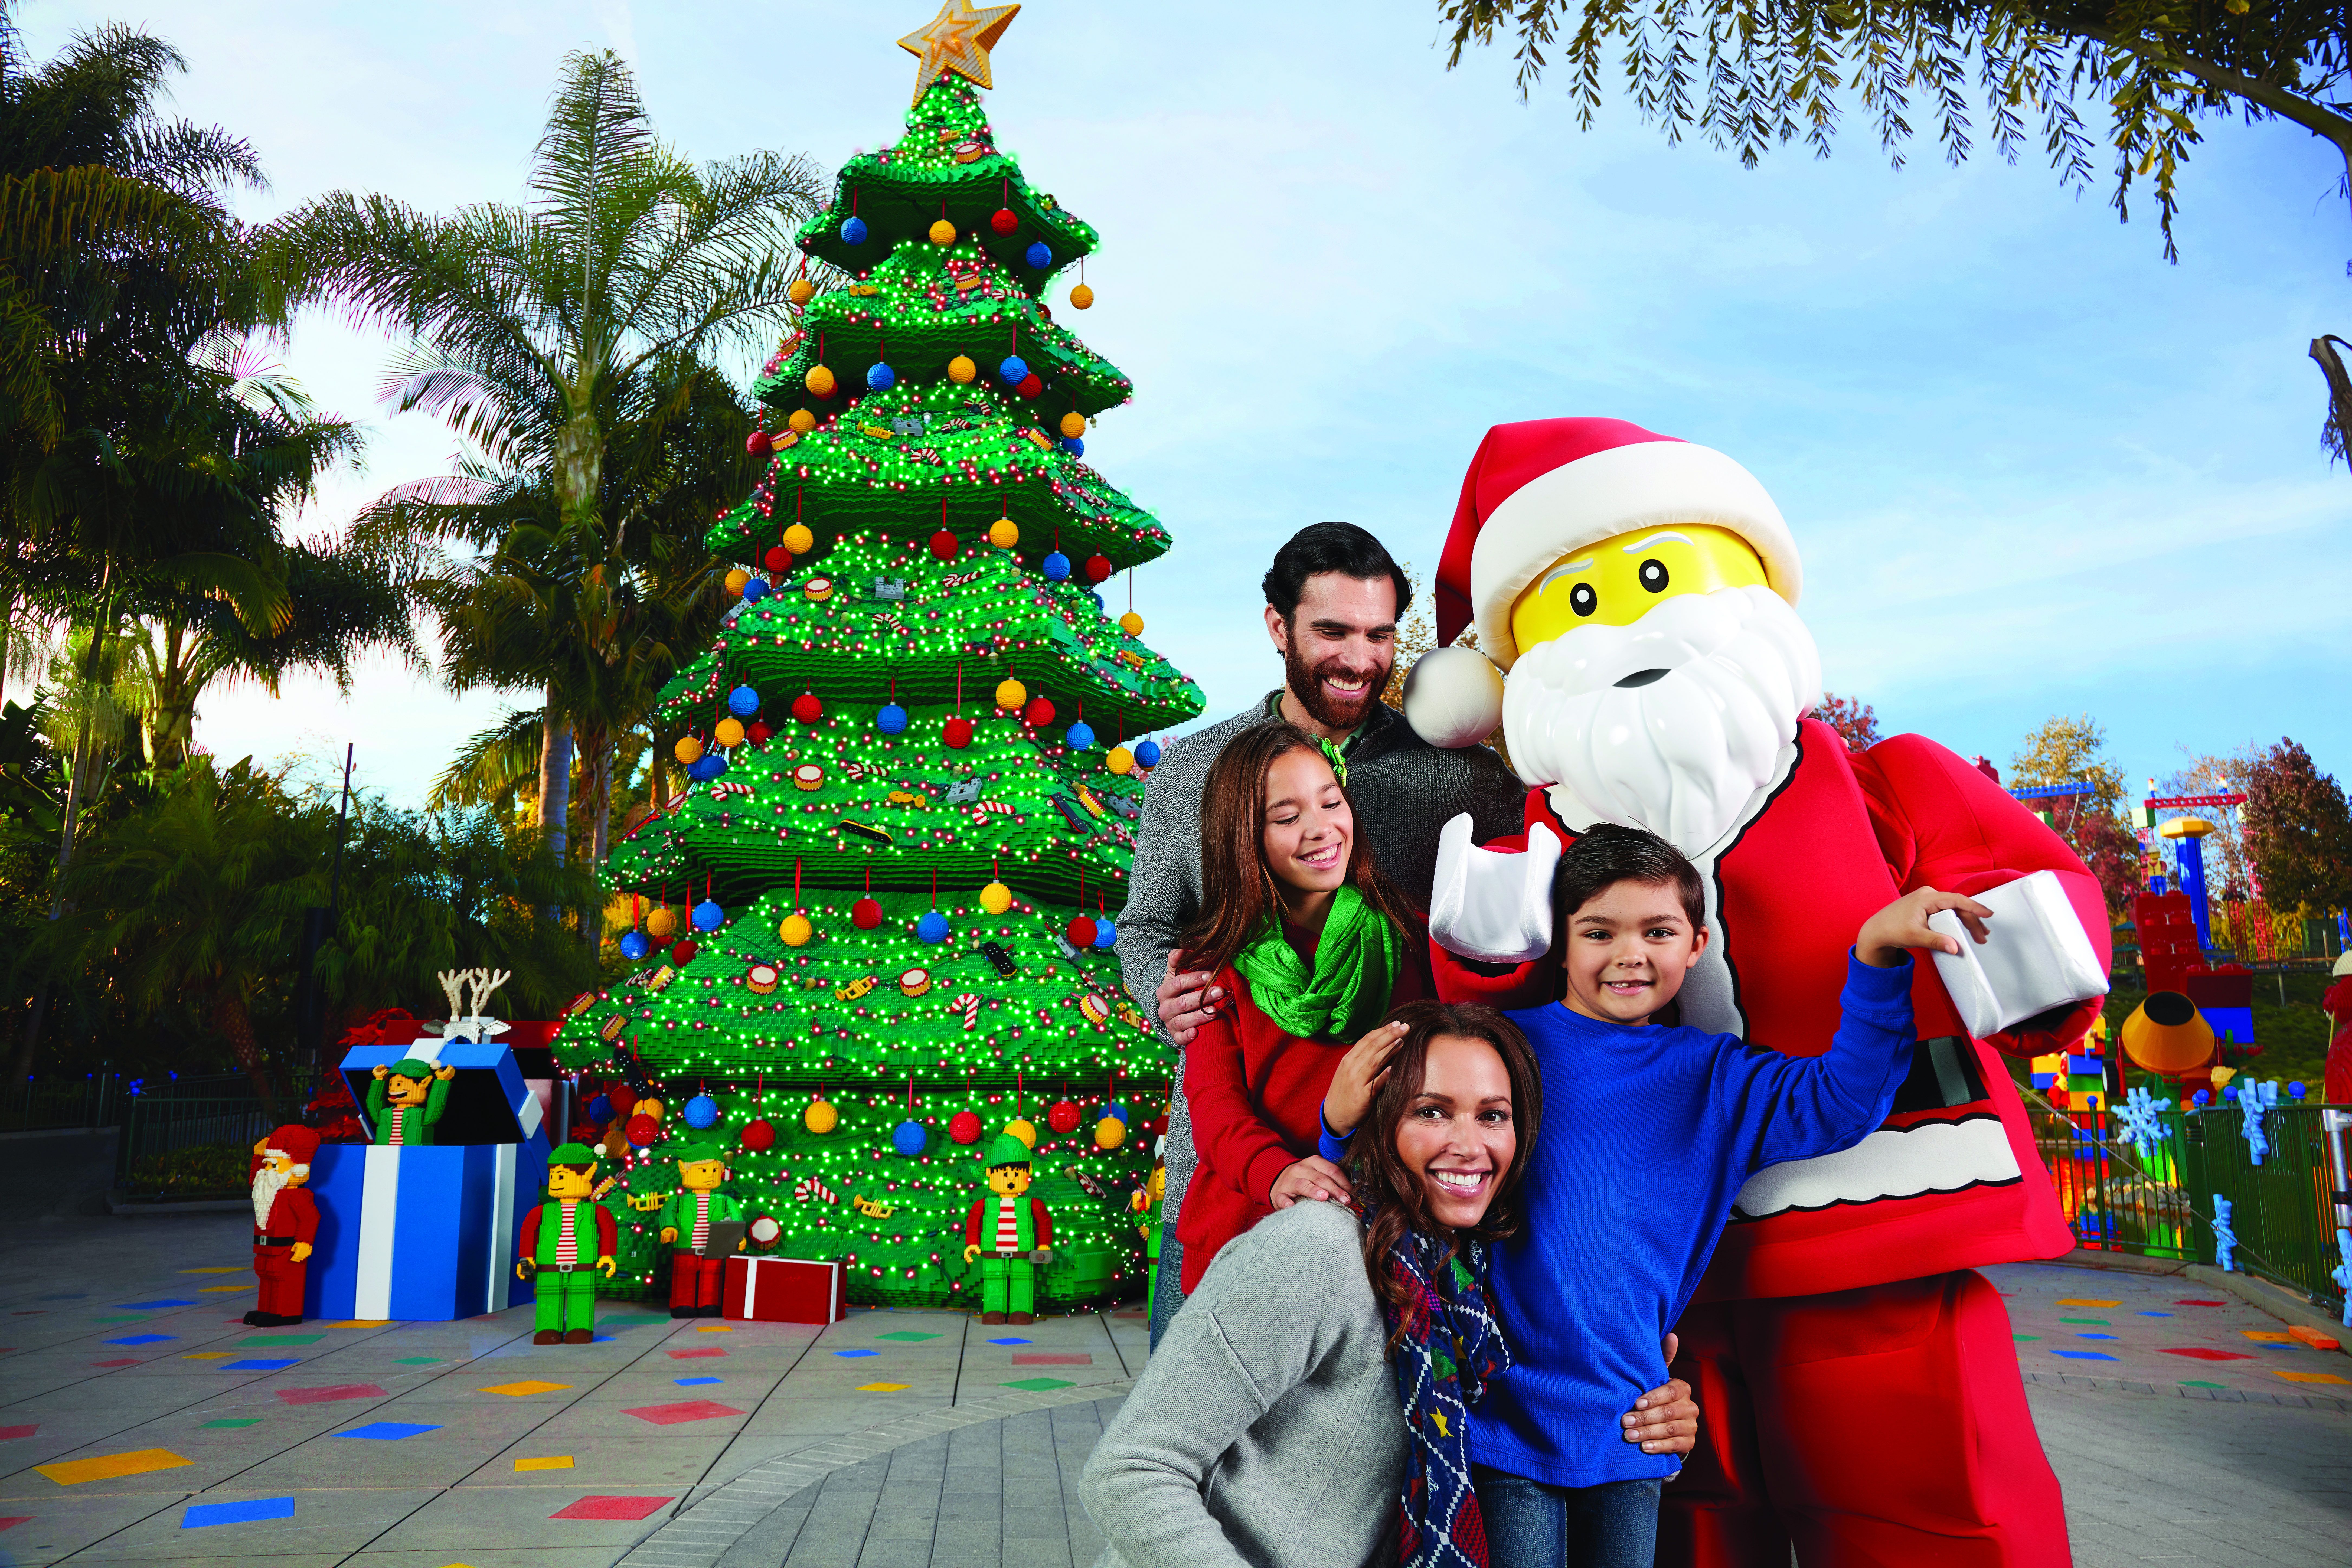 LLCRPark-Holiday-Family-And-Tree-HR-CMYK